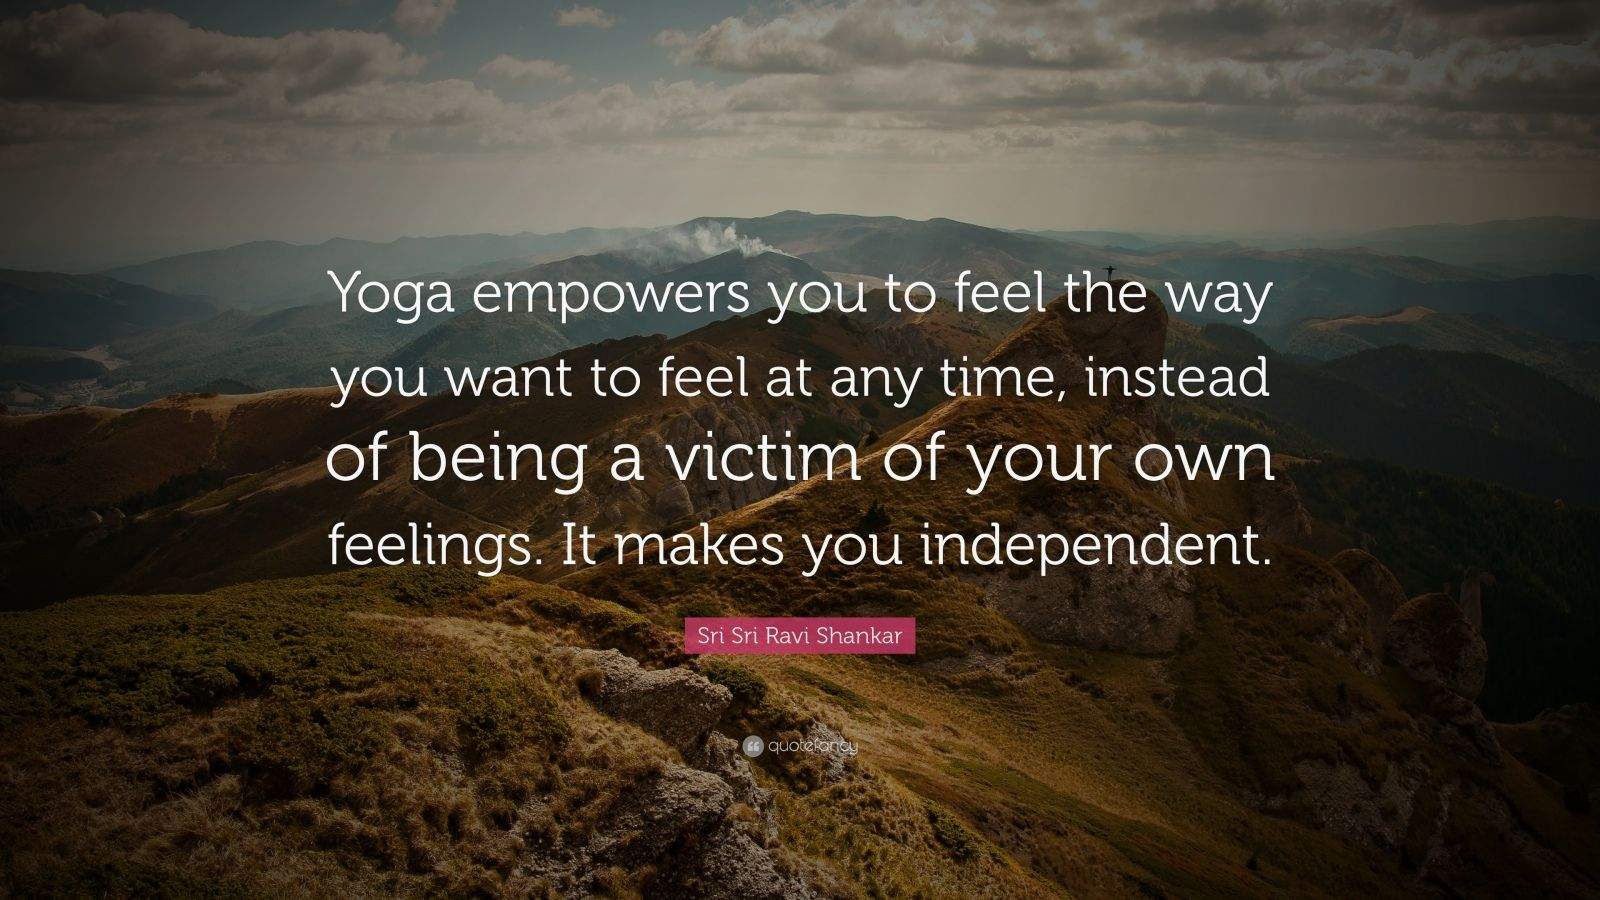 """Sri Sri Ravi Shankar Quote: """"Yoga empowers you to feel the way you want to feel at any time, instead of being a victim of your own feelings. It makes you independent."""""""